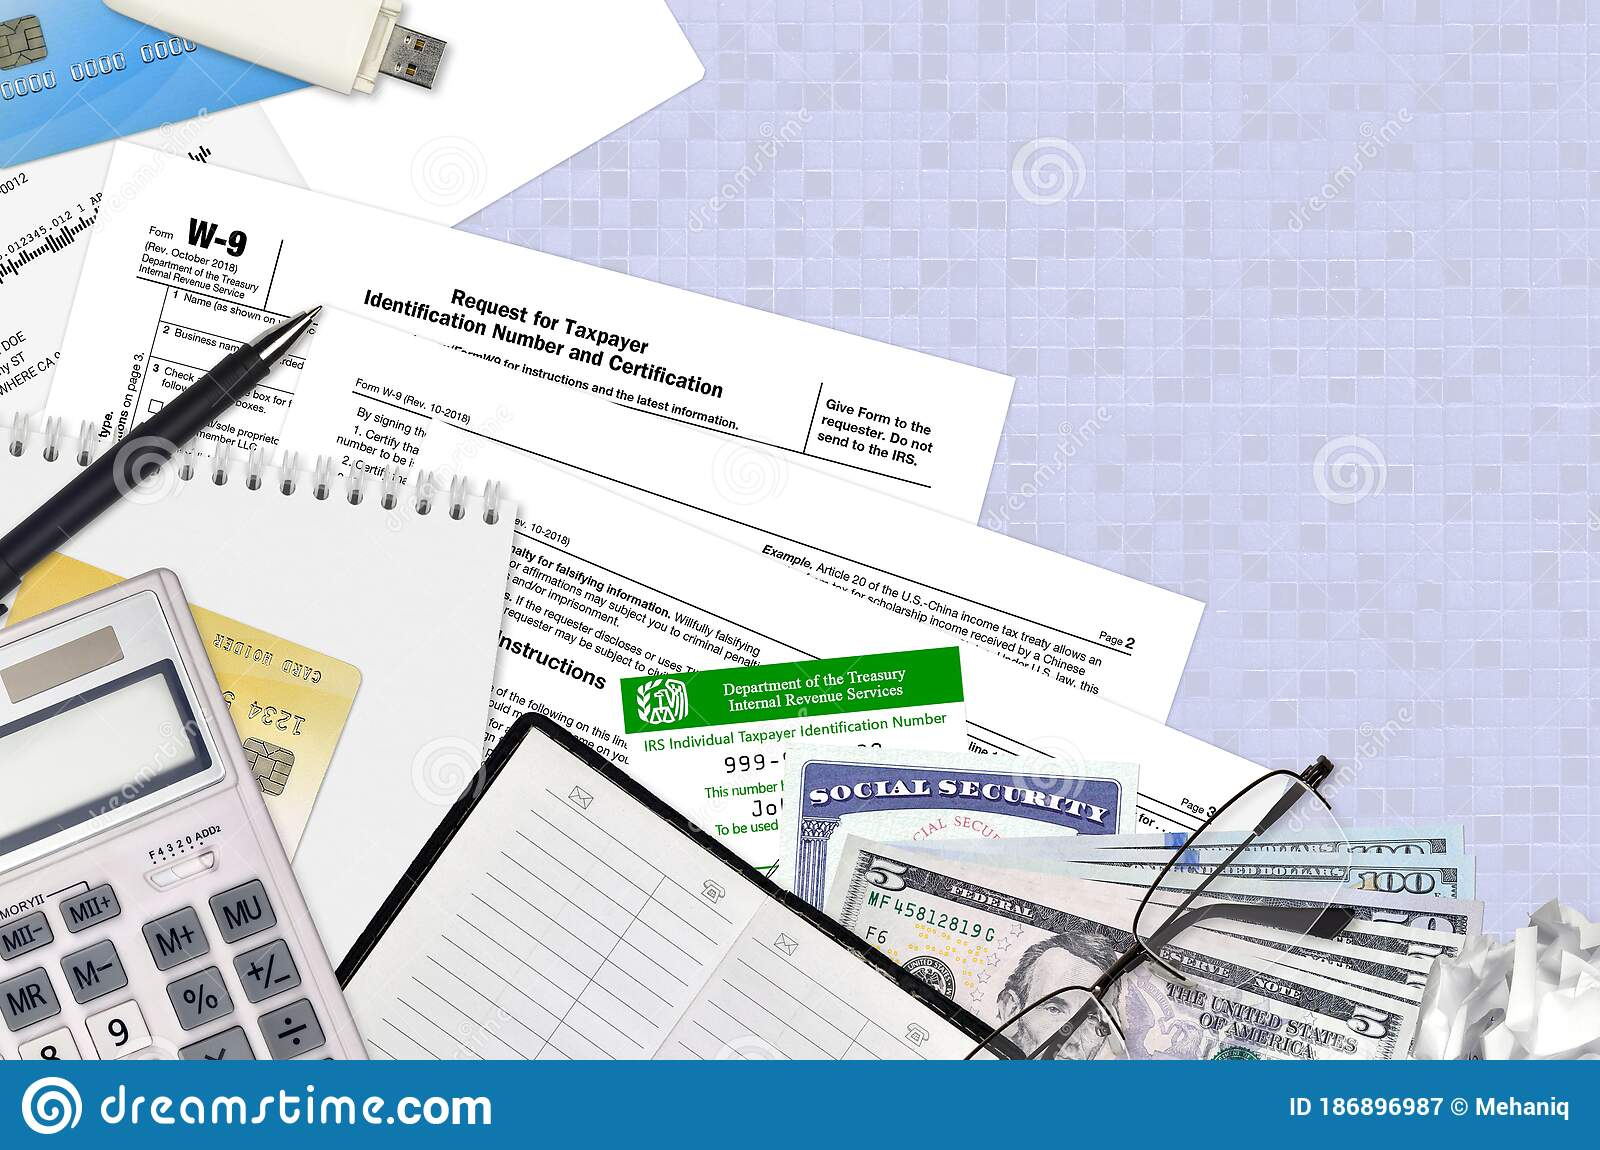 Irs Form W-9 Request For Taxpayer Identification Number And with W-9 Form 2021